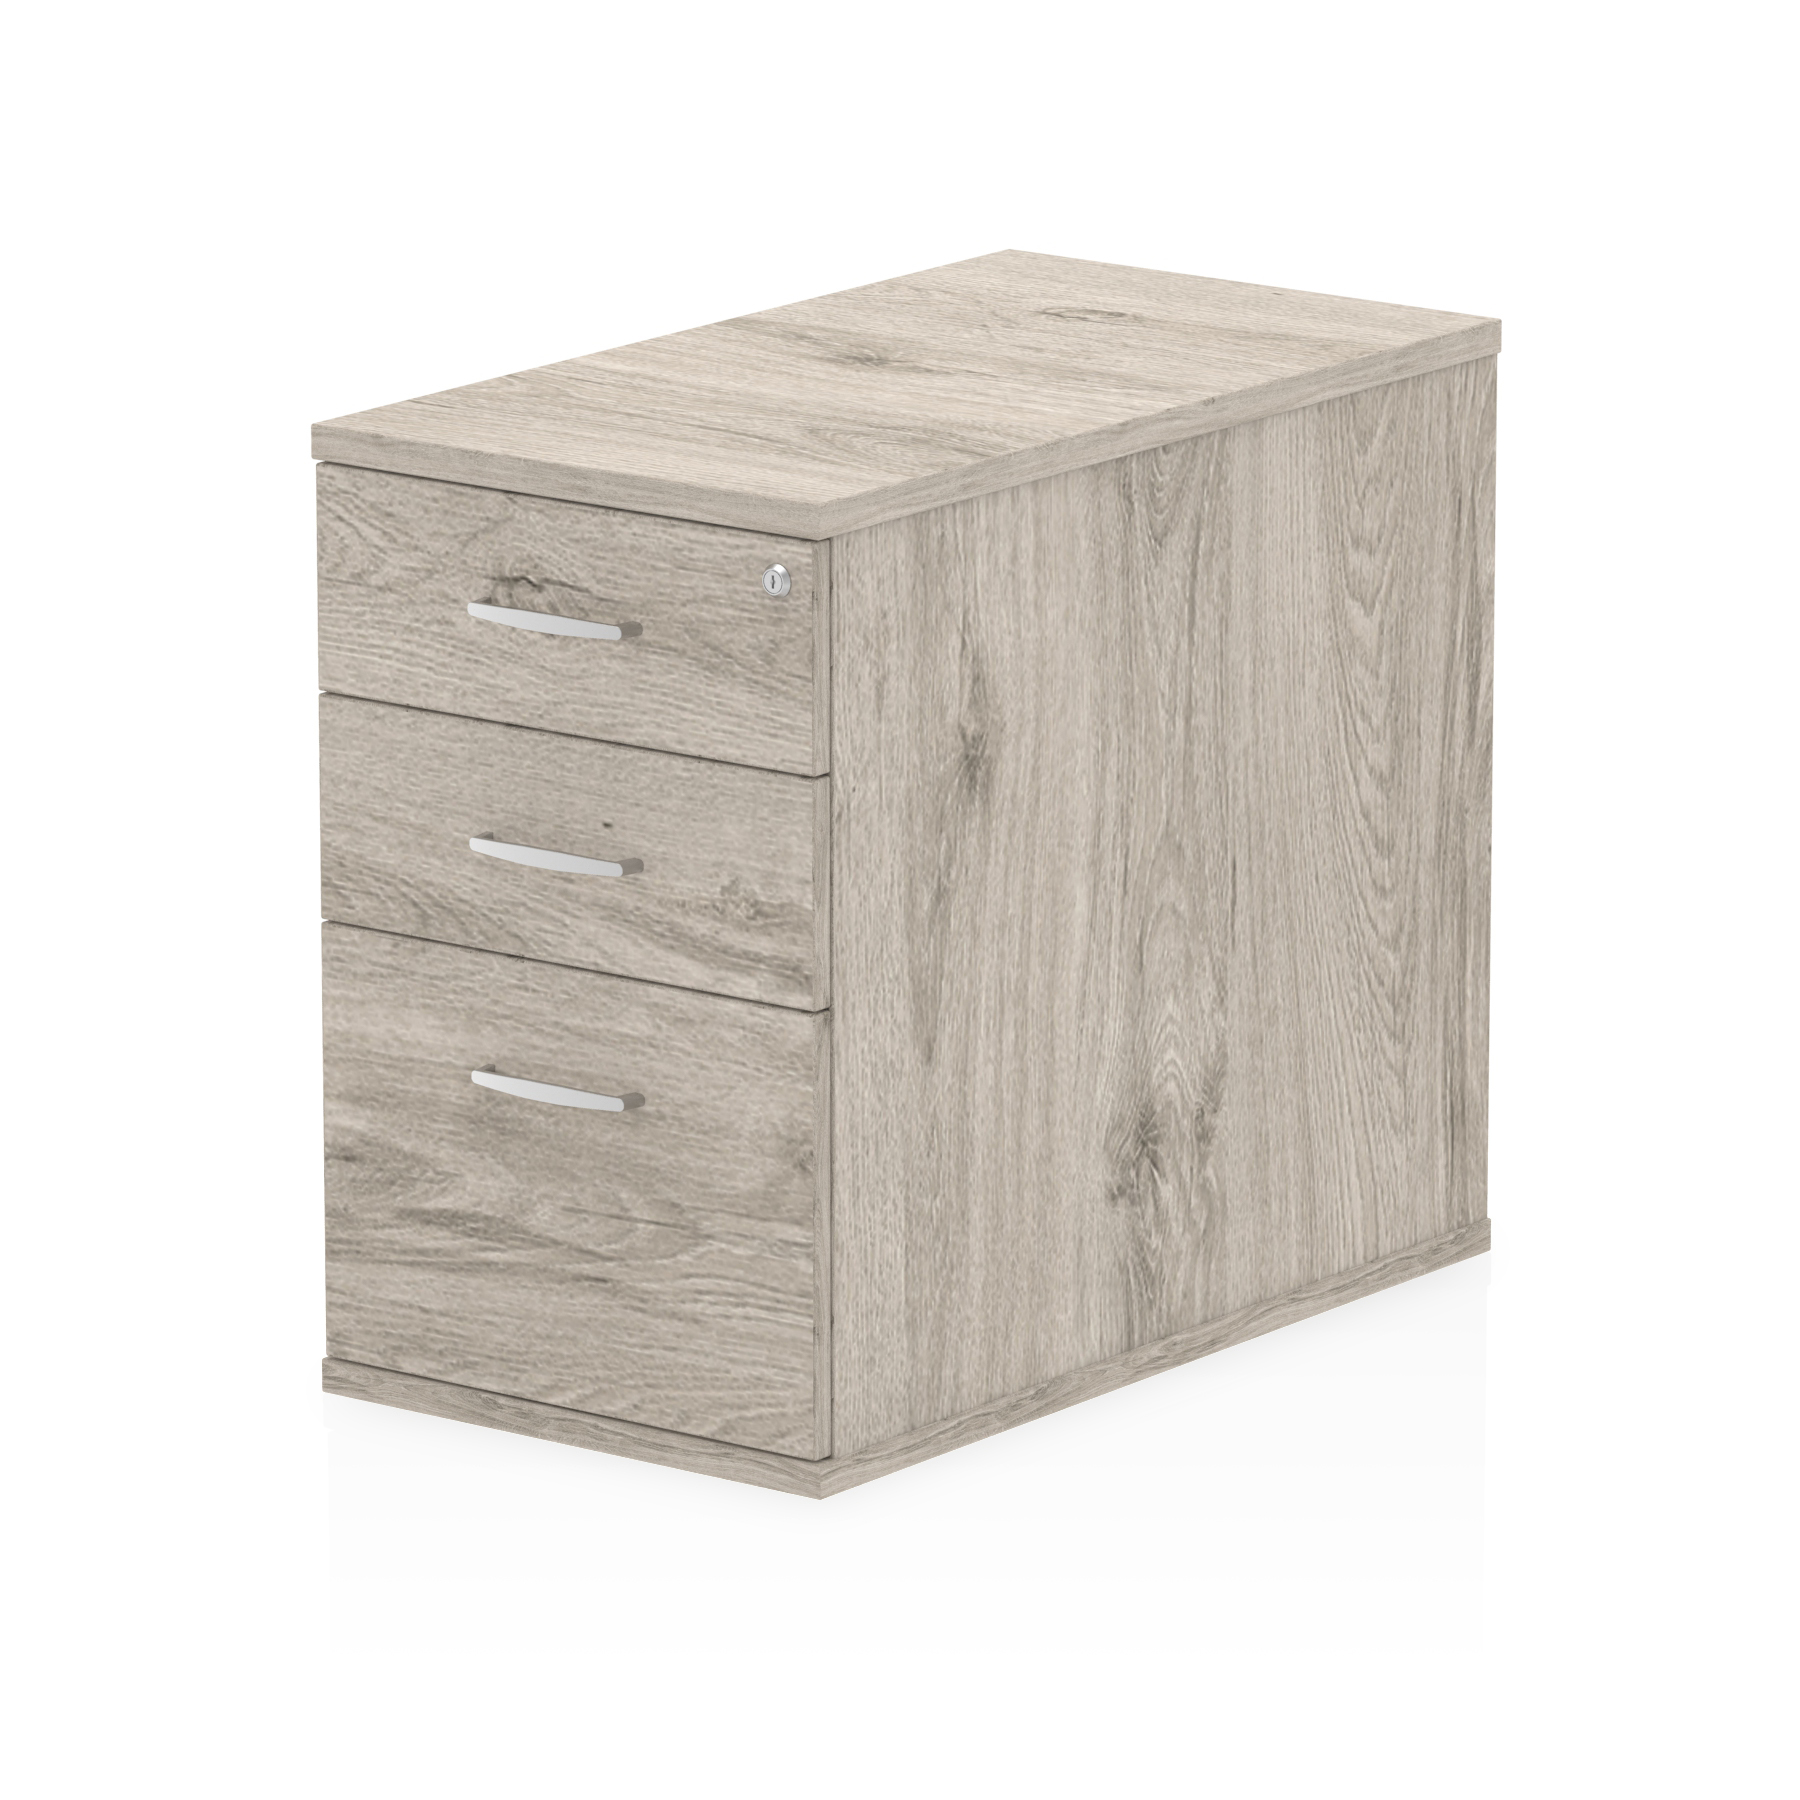 Trexus Desk High 3 Drawer 800D Pedestal 425x800x730mm Grey Oak Ref I003222